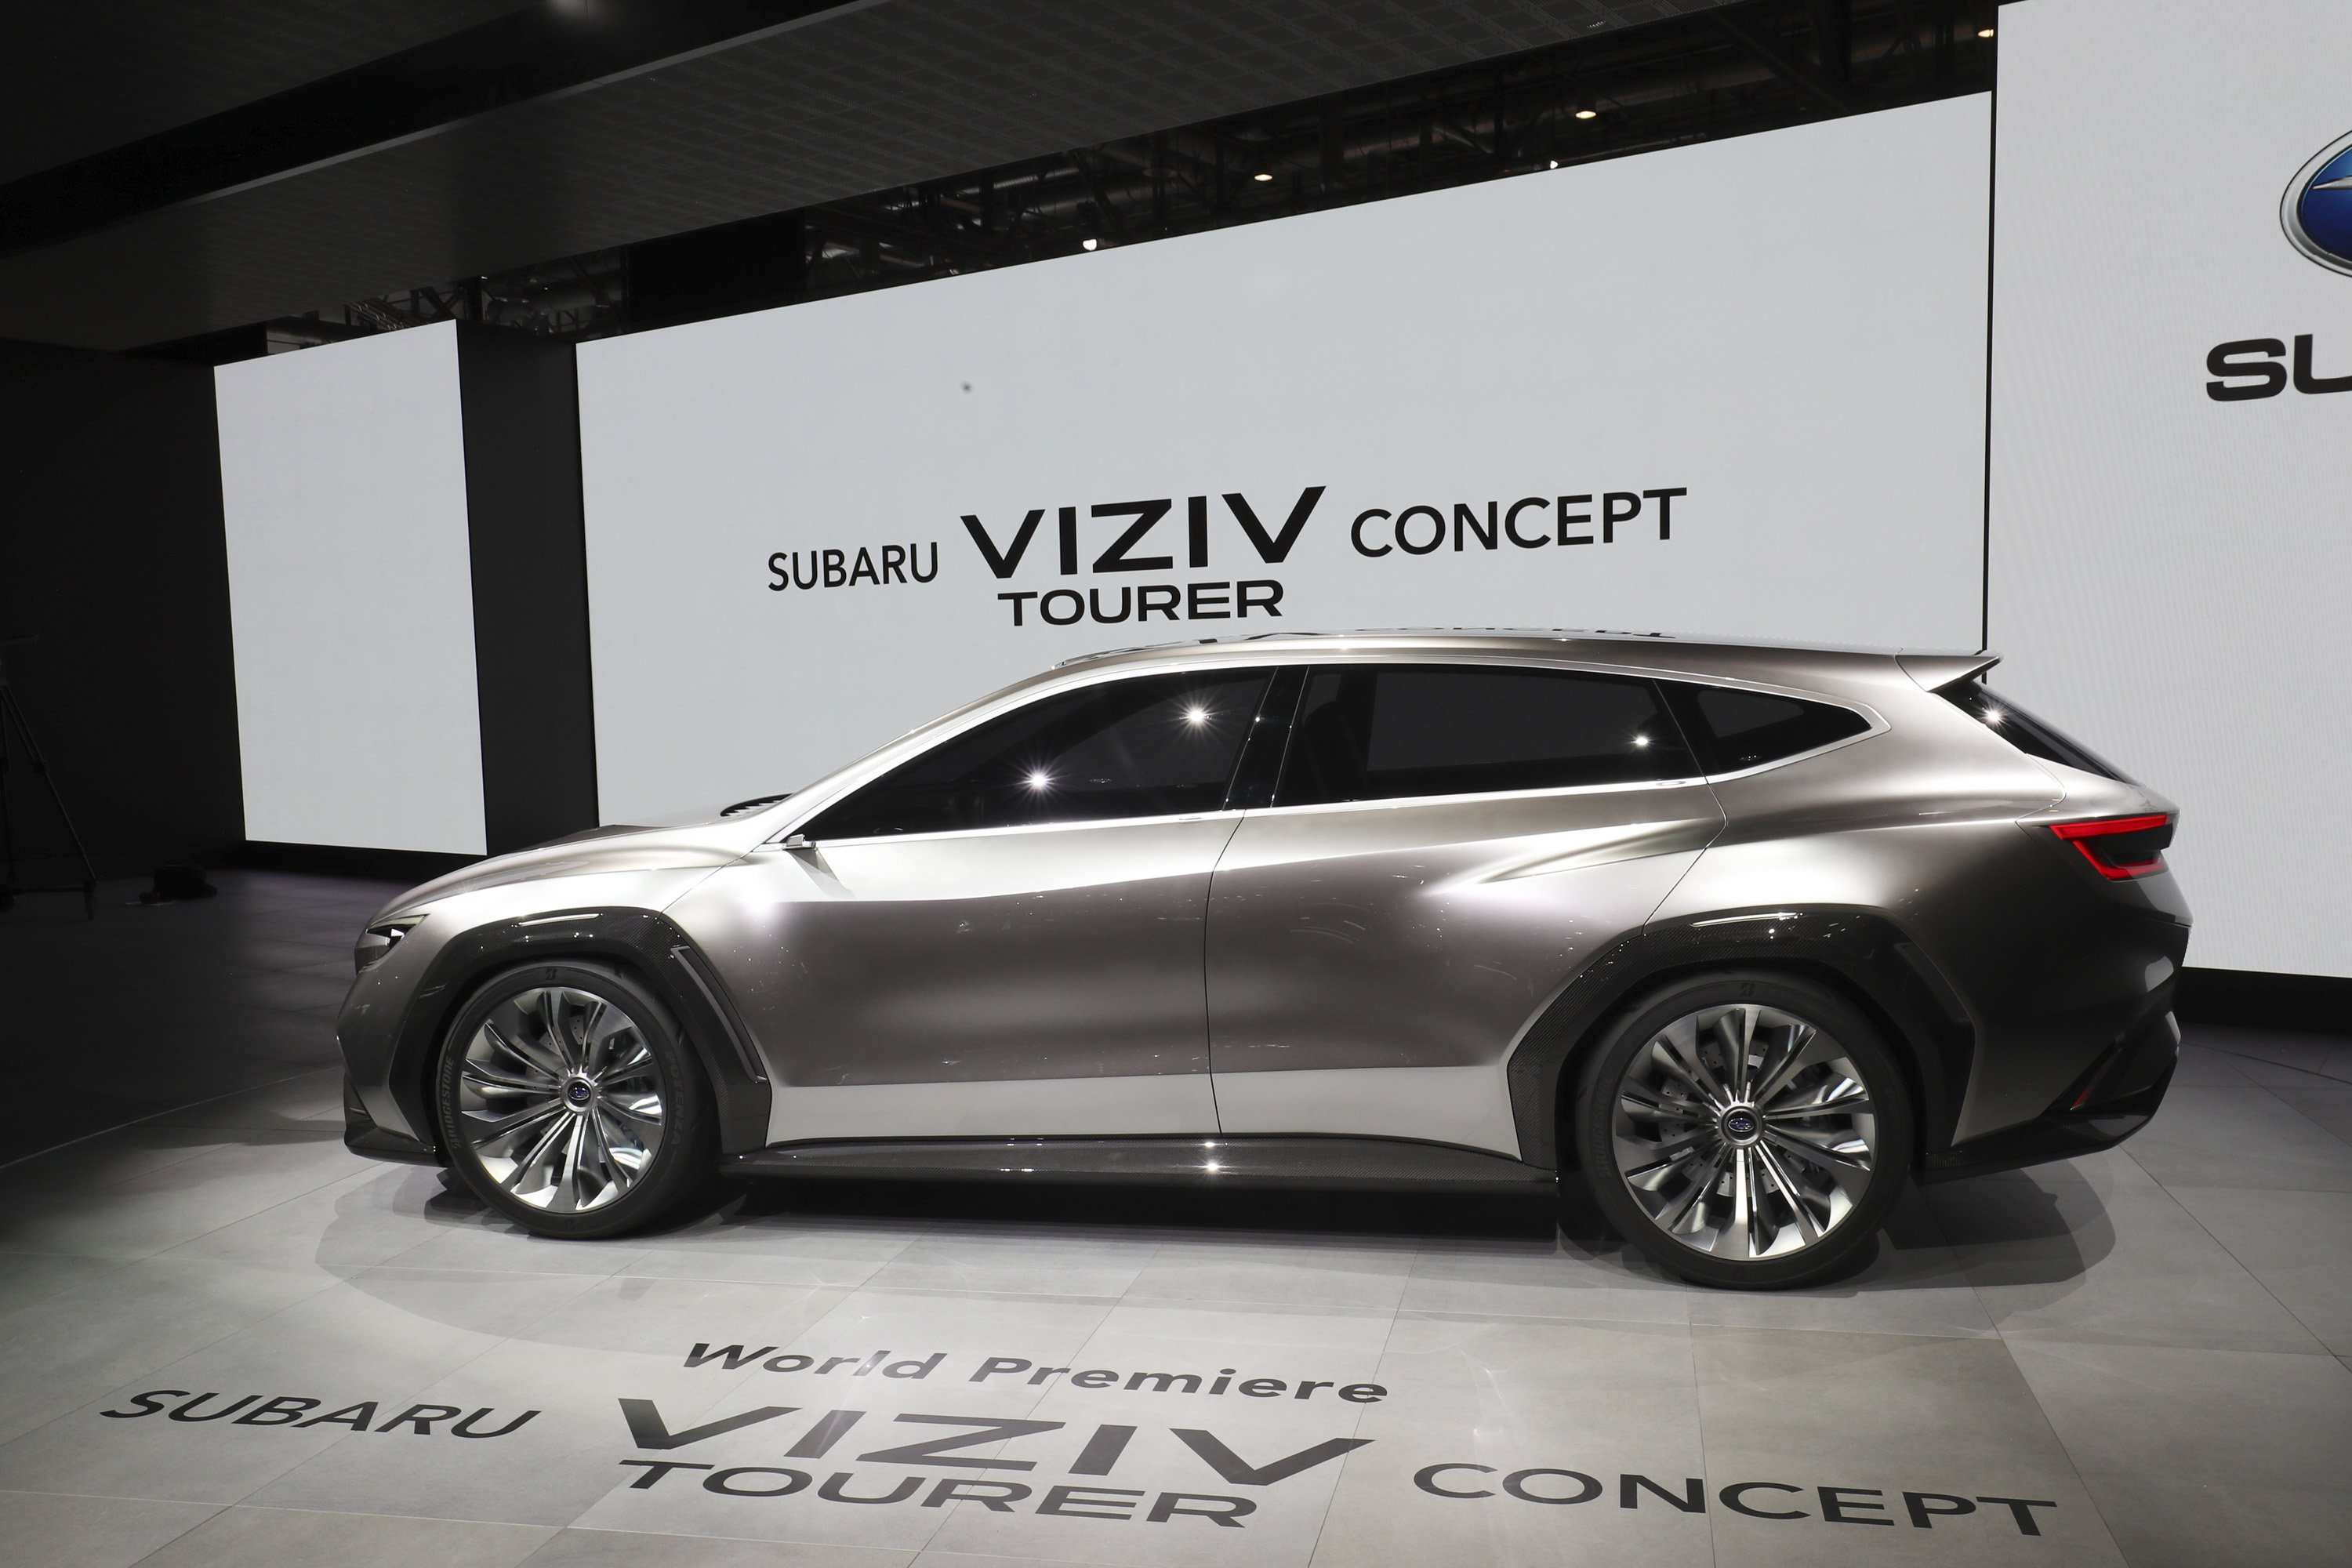 59 Concept of When Do Subaru 2020 Come Out Rumors by When Do Subaru 2020 Come Out